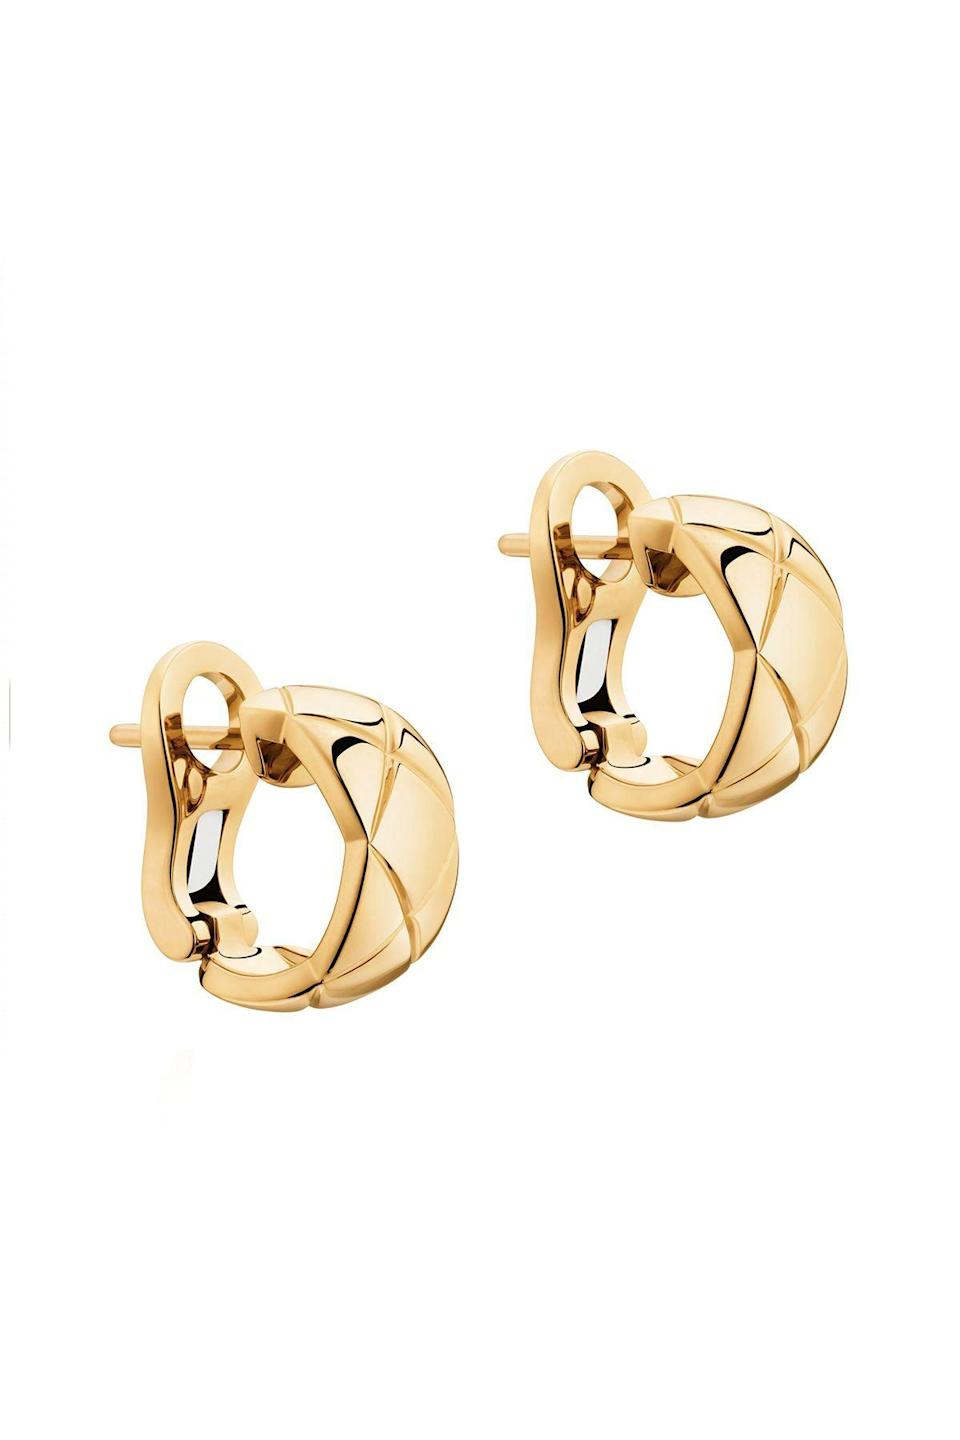 """<p><strong>Chanel</strong></p><p><strong>$3300.00</strong></p><p><a href=""""https://go.redirectingat.com?id=74968X1596630&url=https%3A%2F%2Fwww.chanel.com%2Fus%2Ffine-jewelry%2Fp%2FJ11134%2Fcoco-crush-earrings%2F&sref=https%3A%2F%2Fwww.townandcountrymag.com%2Fstyle%2Fjewelry-and-watches%2Fg33469392%2Fthe-weekly-covet-july-31-2020%2F"""" rel=""""nofollow noopener"""" target=""""_blank"""" data-ylk=""""slk:Shop Now"""" class=""""link rapid-noclick-resp"""">Shop Now</a></p><p>Match your earrings to you bag with this option from Chanel where they carried their signature quilted design into their jewelry</p>"""